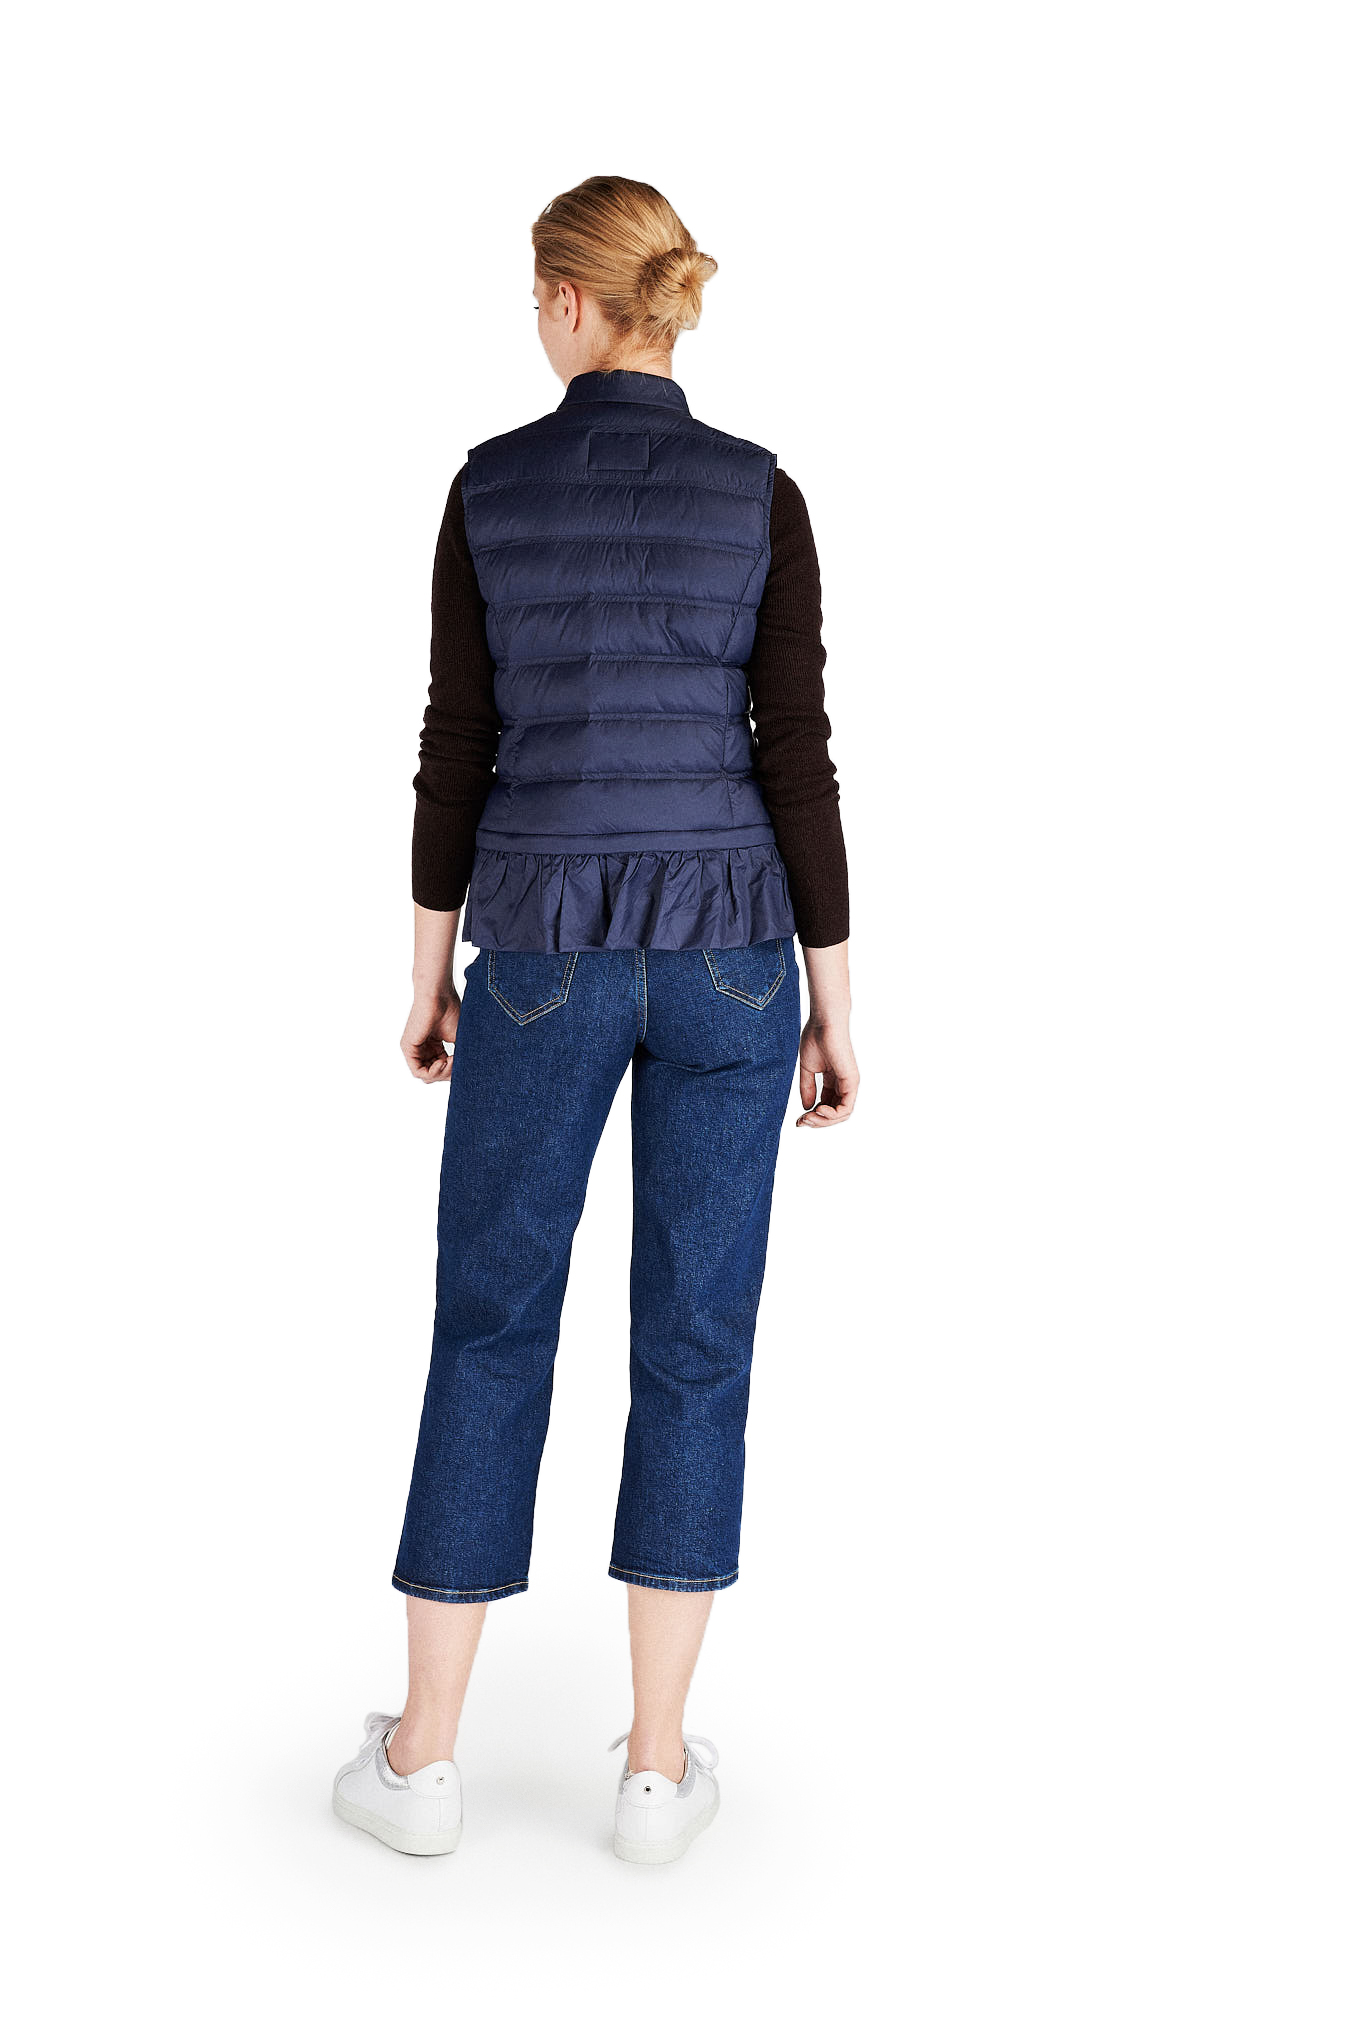 Waist Coat Dark Blue Casual Woman